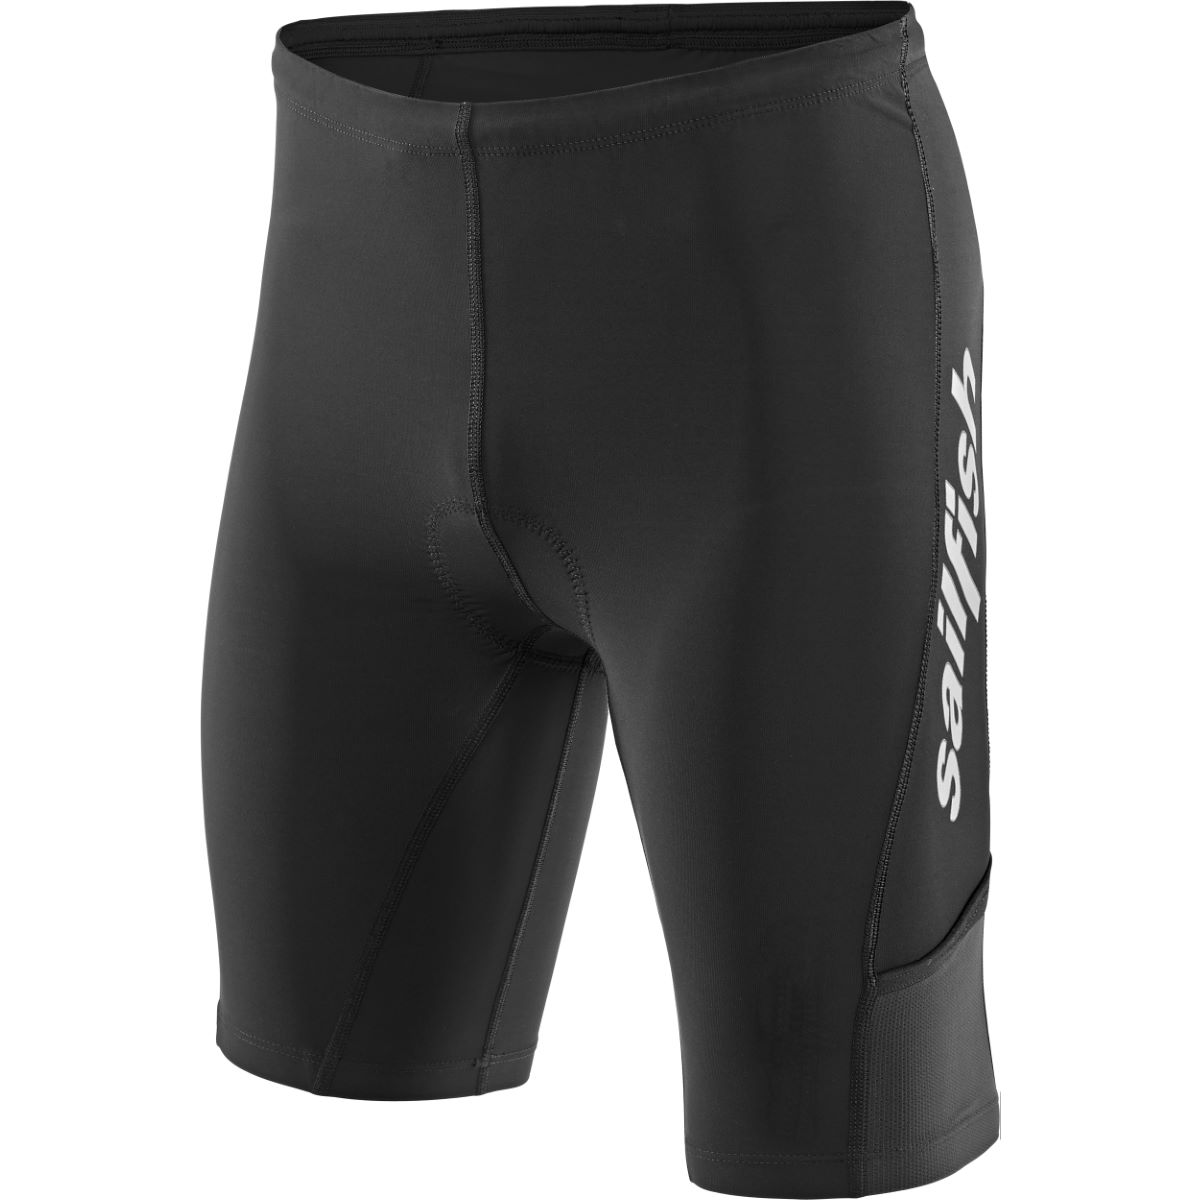 Cuissard court de triathlon Sailfish Comp - XS Noir Cuissards de triathlon